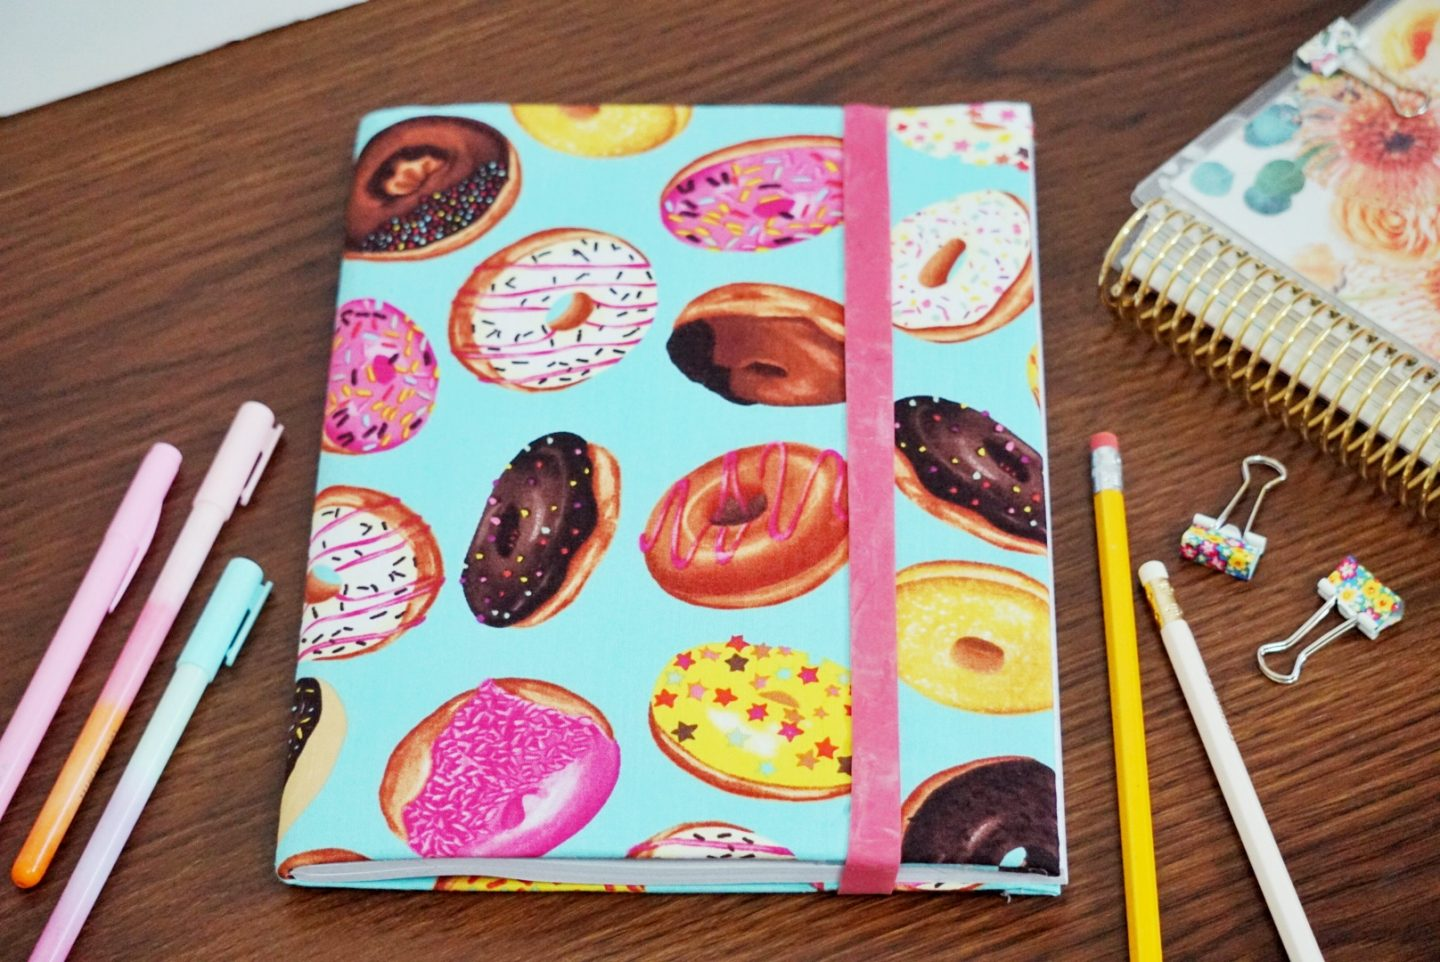 Turn Your Plain Notebook into a Cute Daily Journal